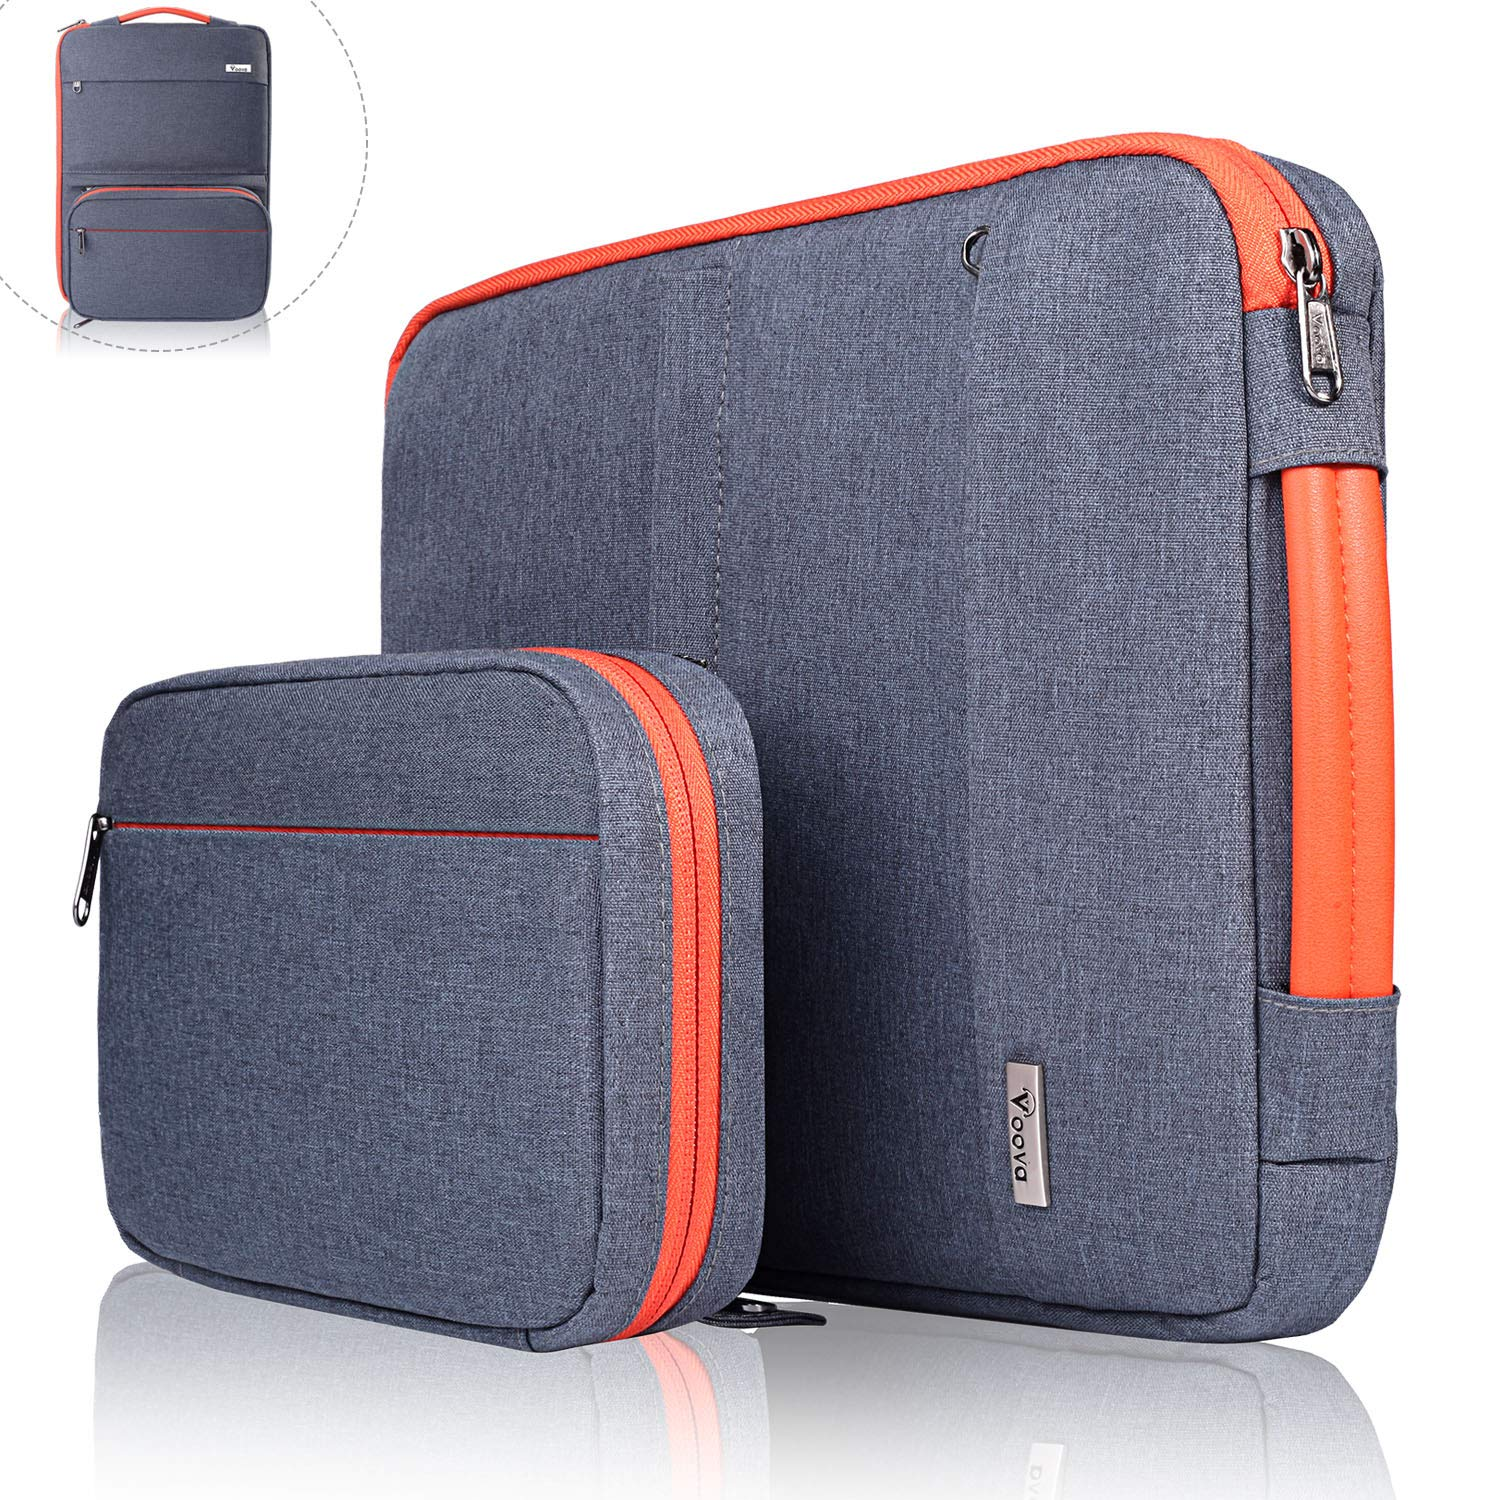 Voova 14-15.6 Inch Laptop Sleeve Bag Cover Special Design Waterproof Computer Protective Carry Case with Detachable Accessory Pocket Compatible with MacBook Pro Retina 15'', HP, Asus, Acer, Dark Gray by Voova